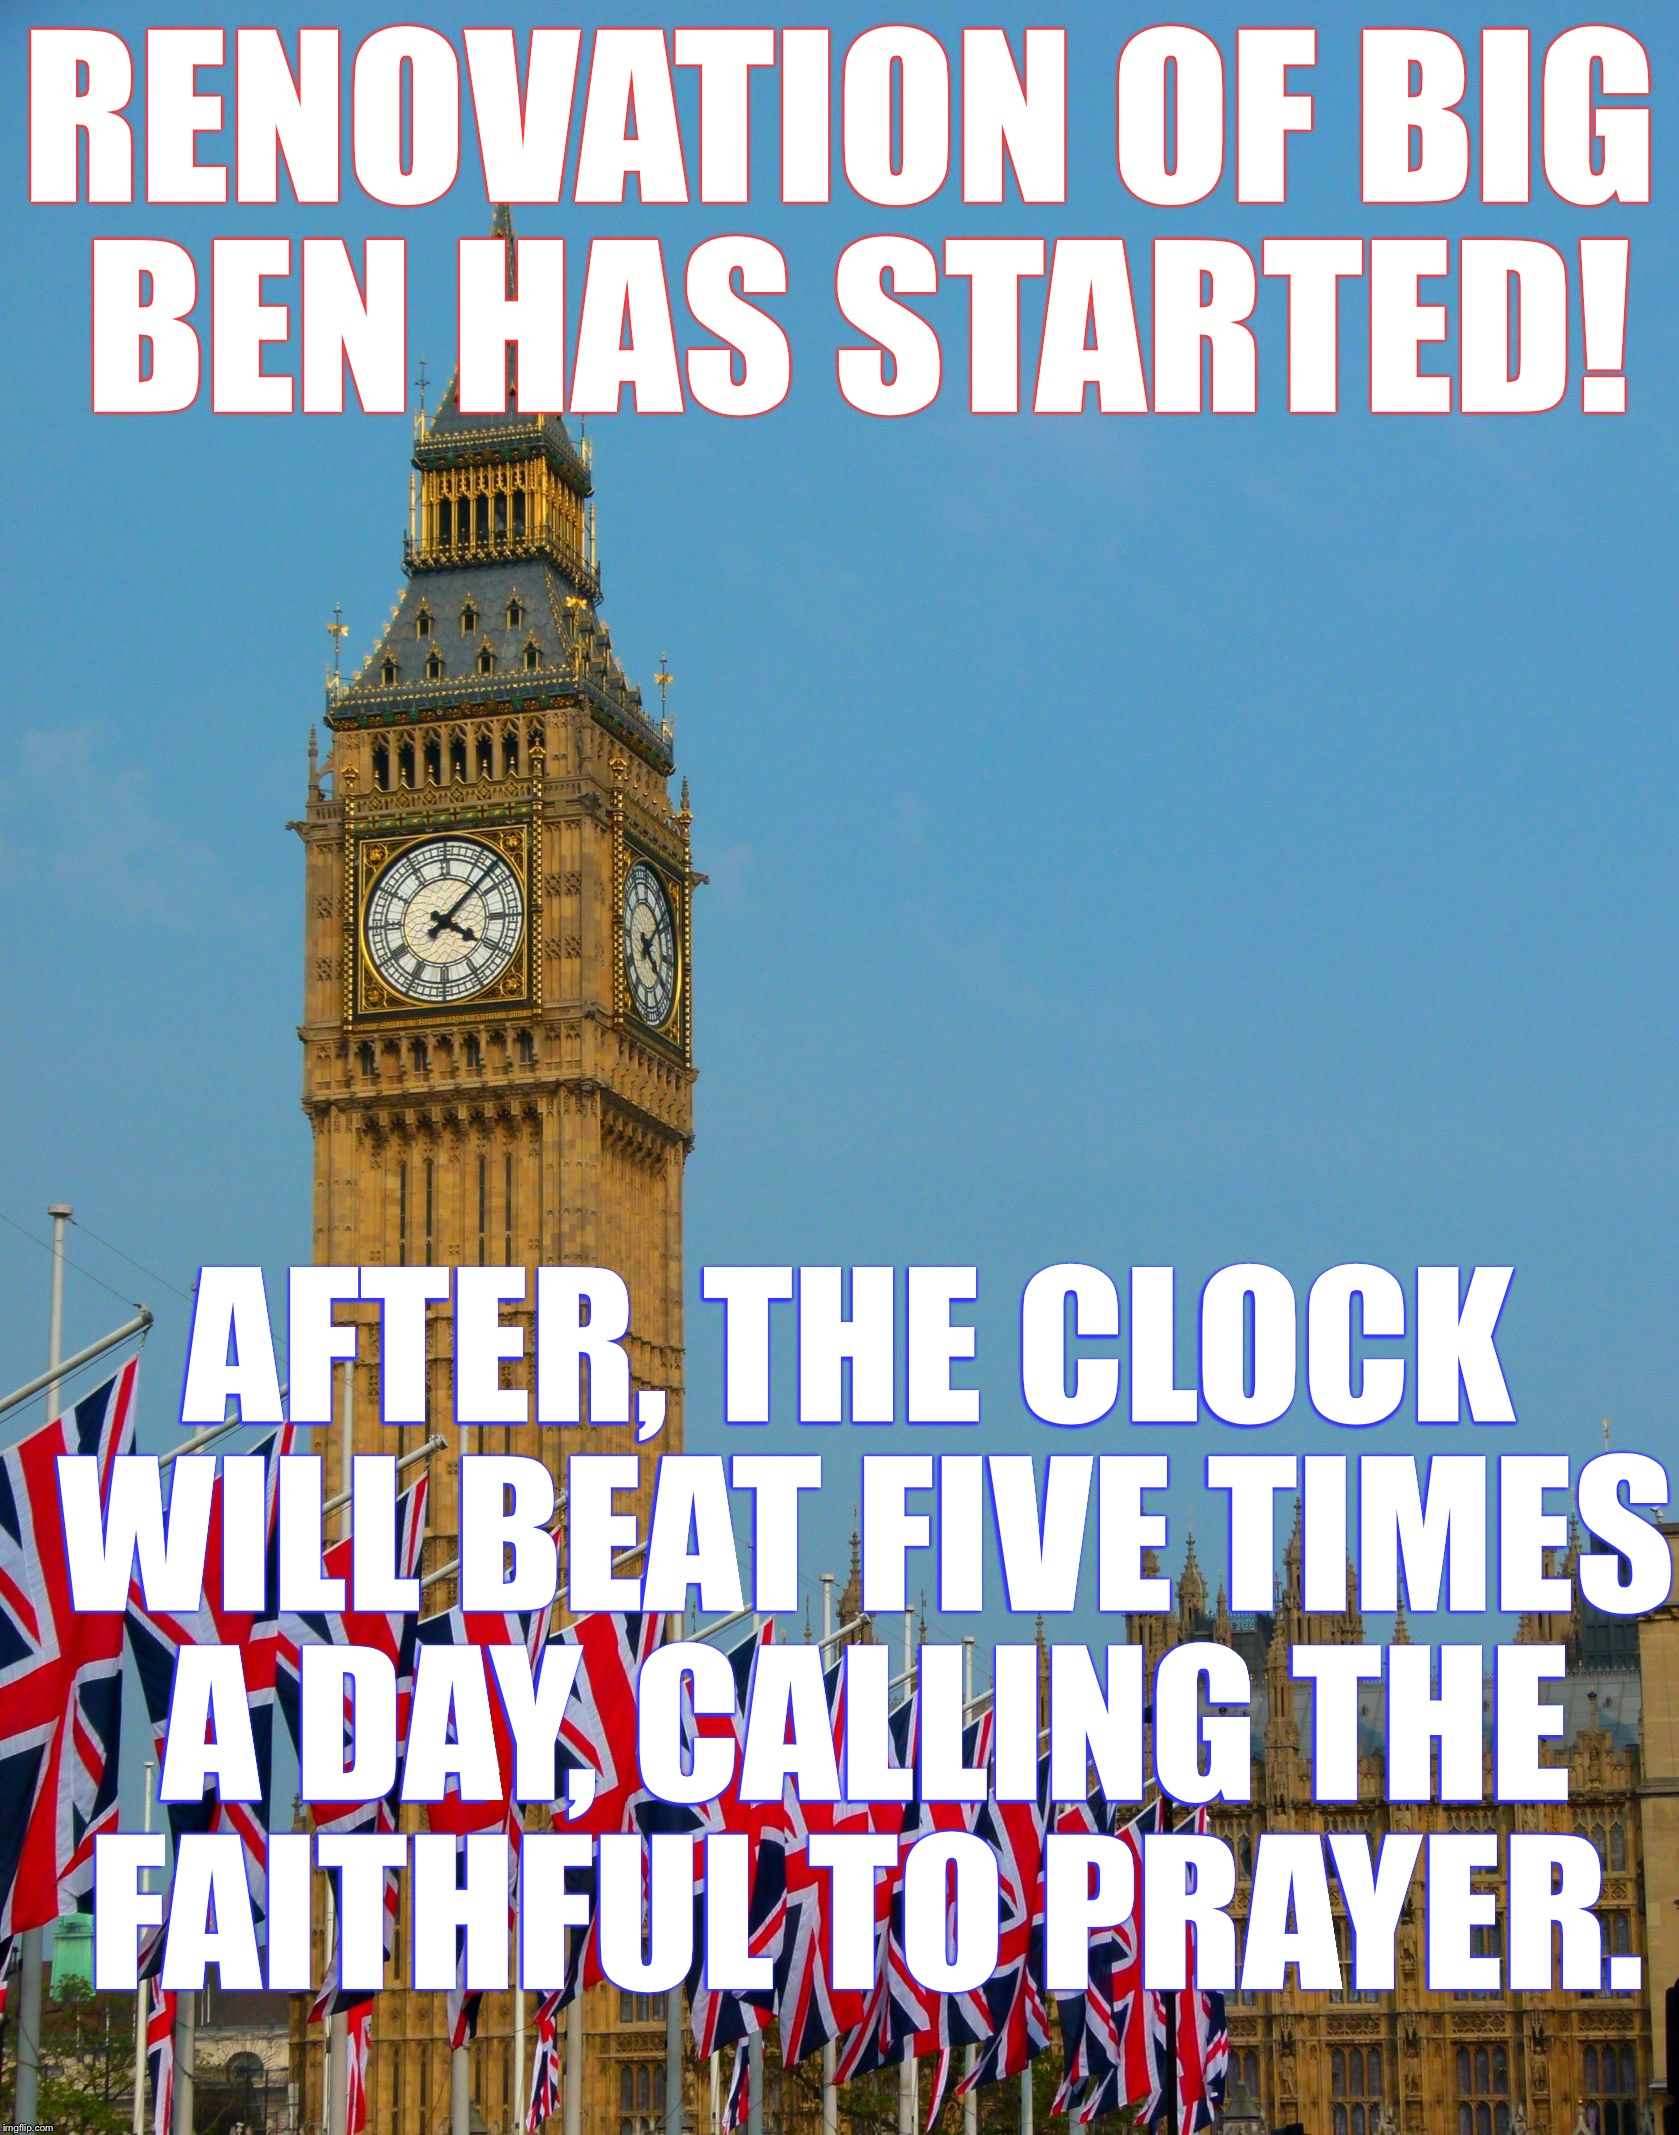 Big Changes For Big Ben | RENOVATION OF BIG BEN HAS STARTED! AFTER, THE CLOCK WILL BEAT FIVE TIMES A DAY, CALLING THE FAITHFUL TO PRAYER. | image tagged in big ben parade | made w/ Imgflip meme maker